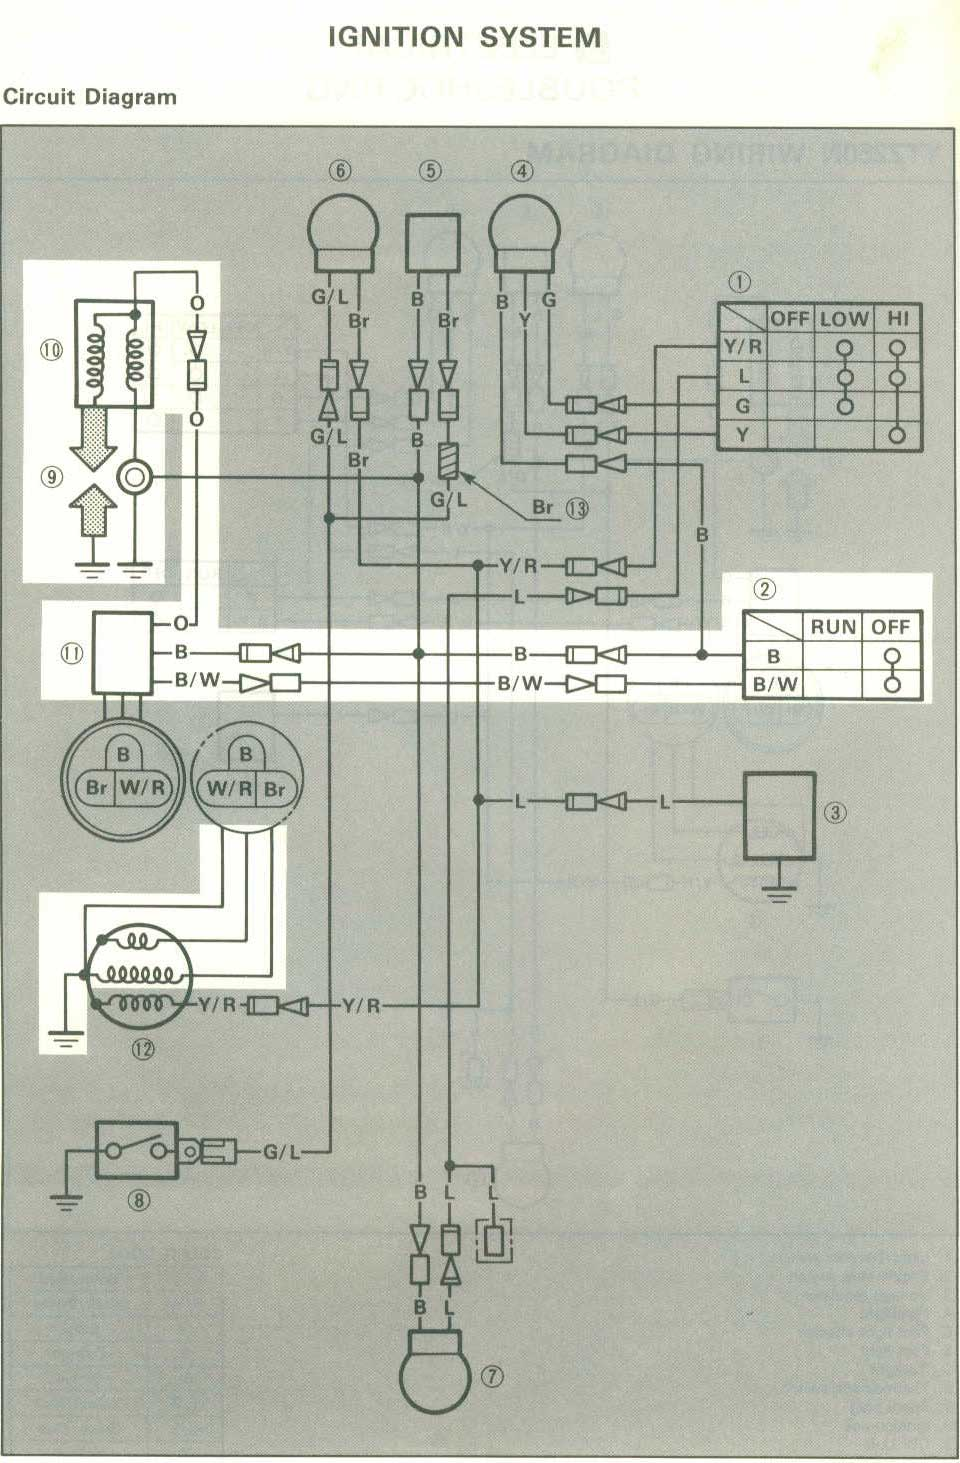 3 wheeler world tech help yamaha wiring diagrams rh 3wheelerworld com 1985 Yamaha 225 3 Wheeler 1983 Yamaha 225 3 Wheeler